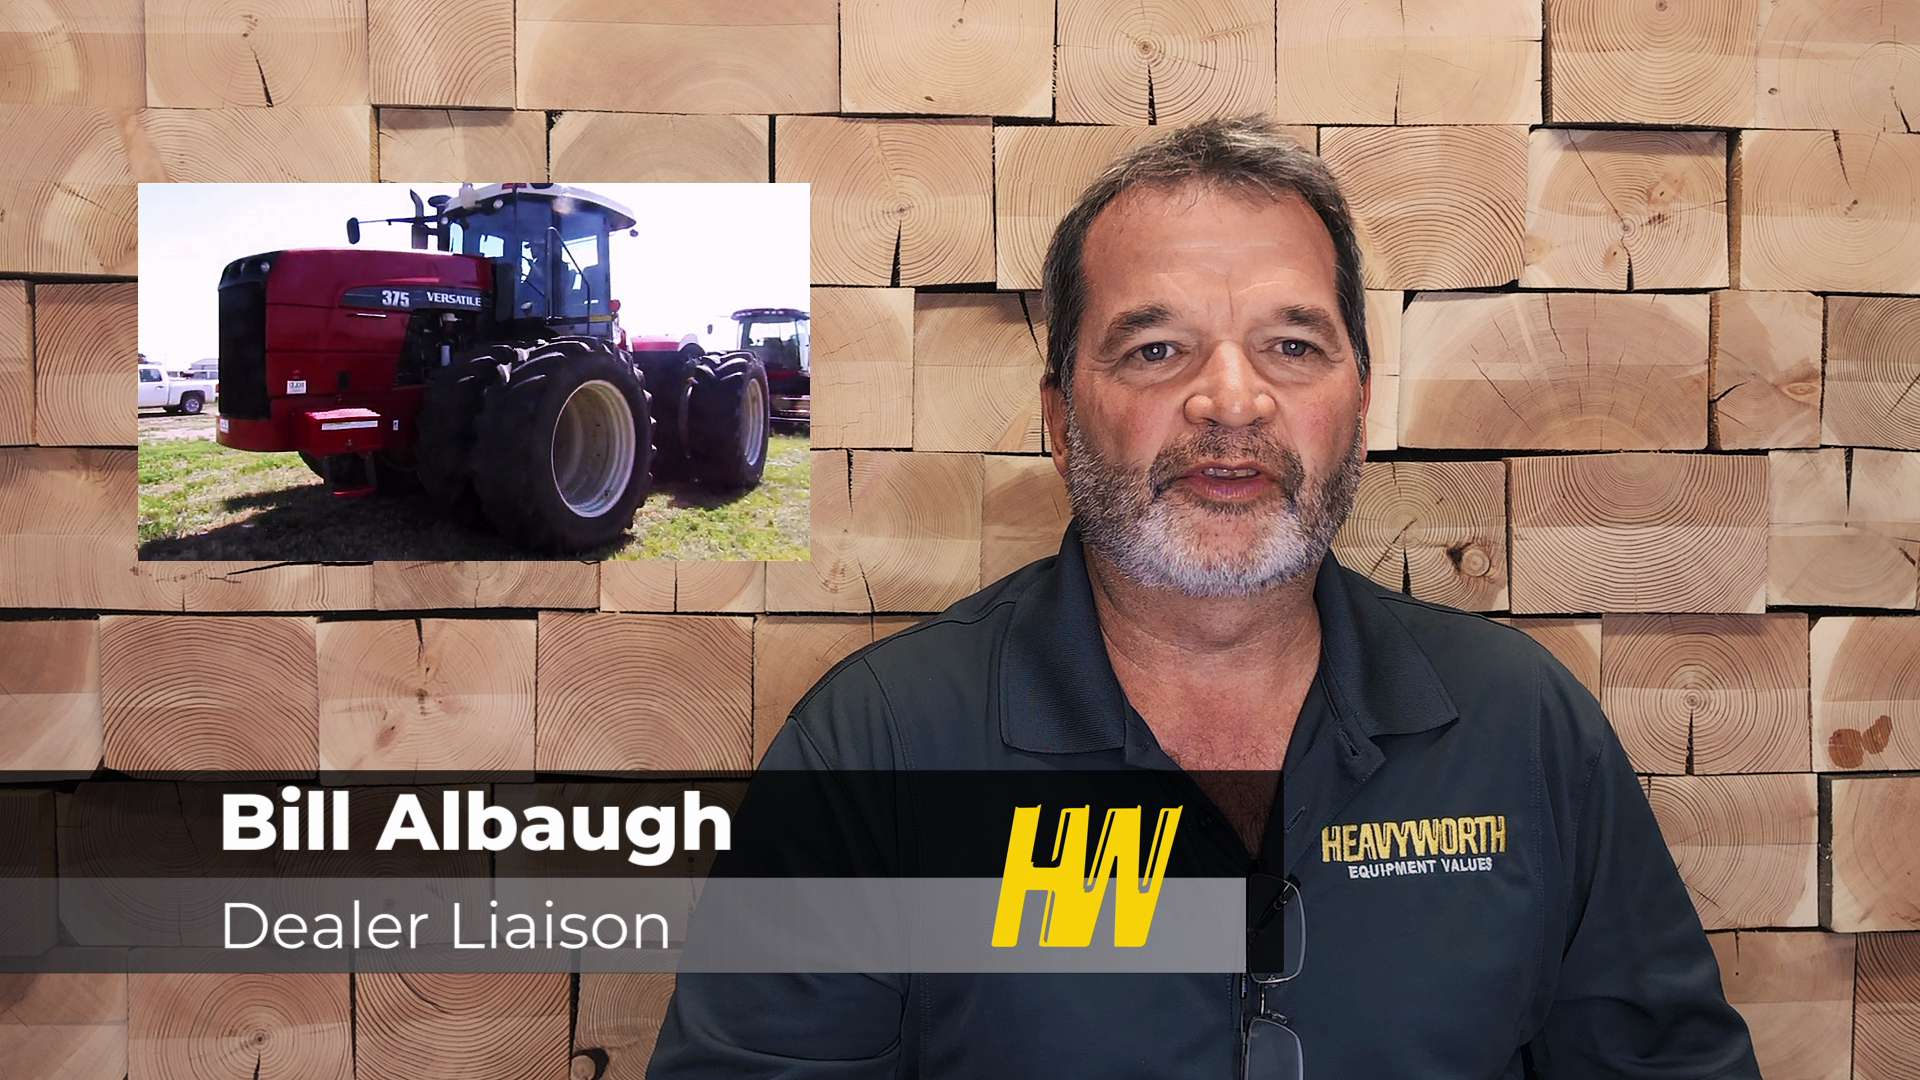 Bill Albaugh explains why tires matter so much to getting an accurate valuation.